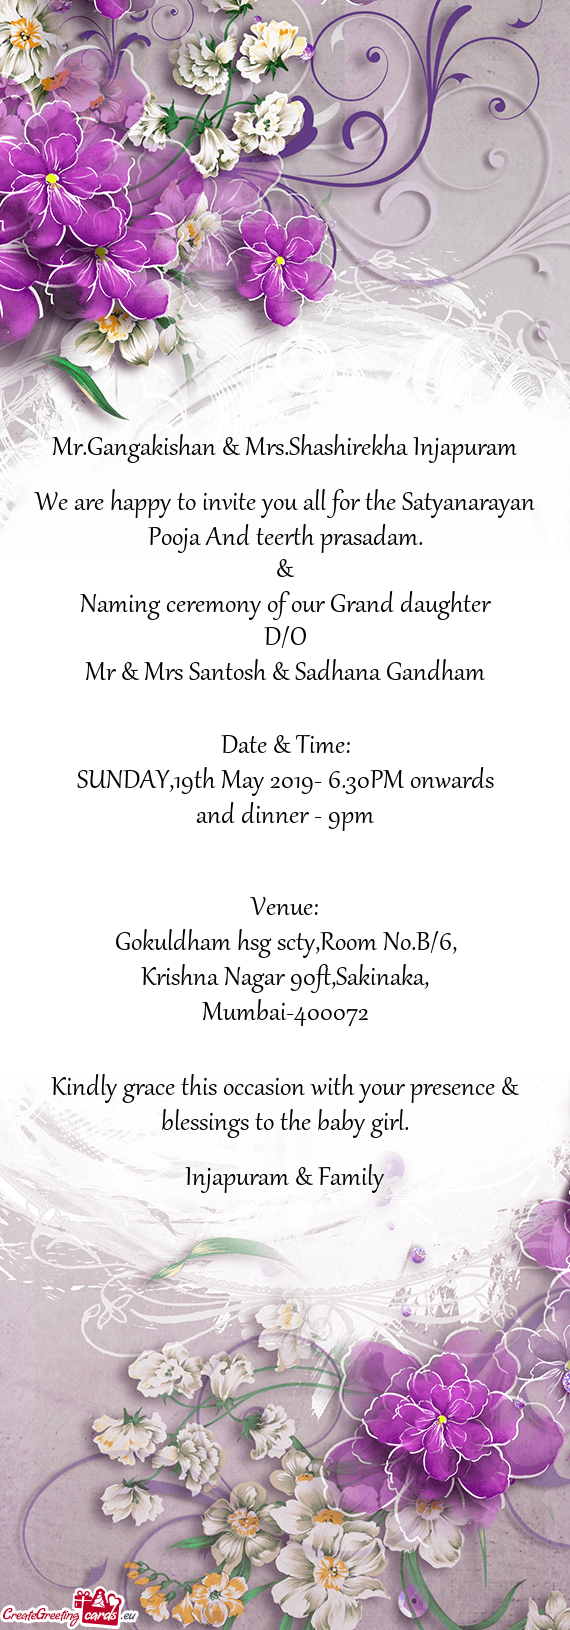 We Are Happy To Invite You All For The Satyanarayan Pooja